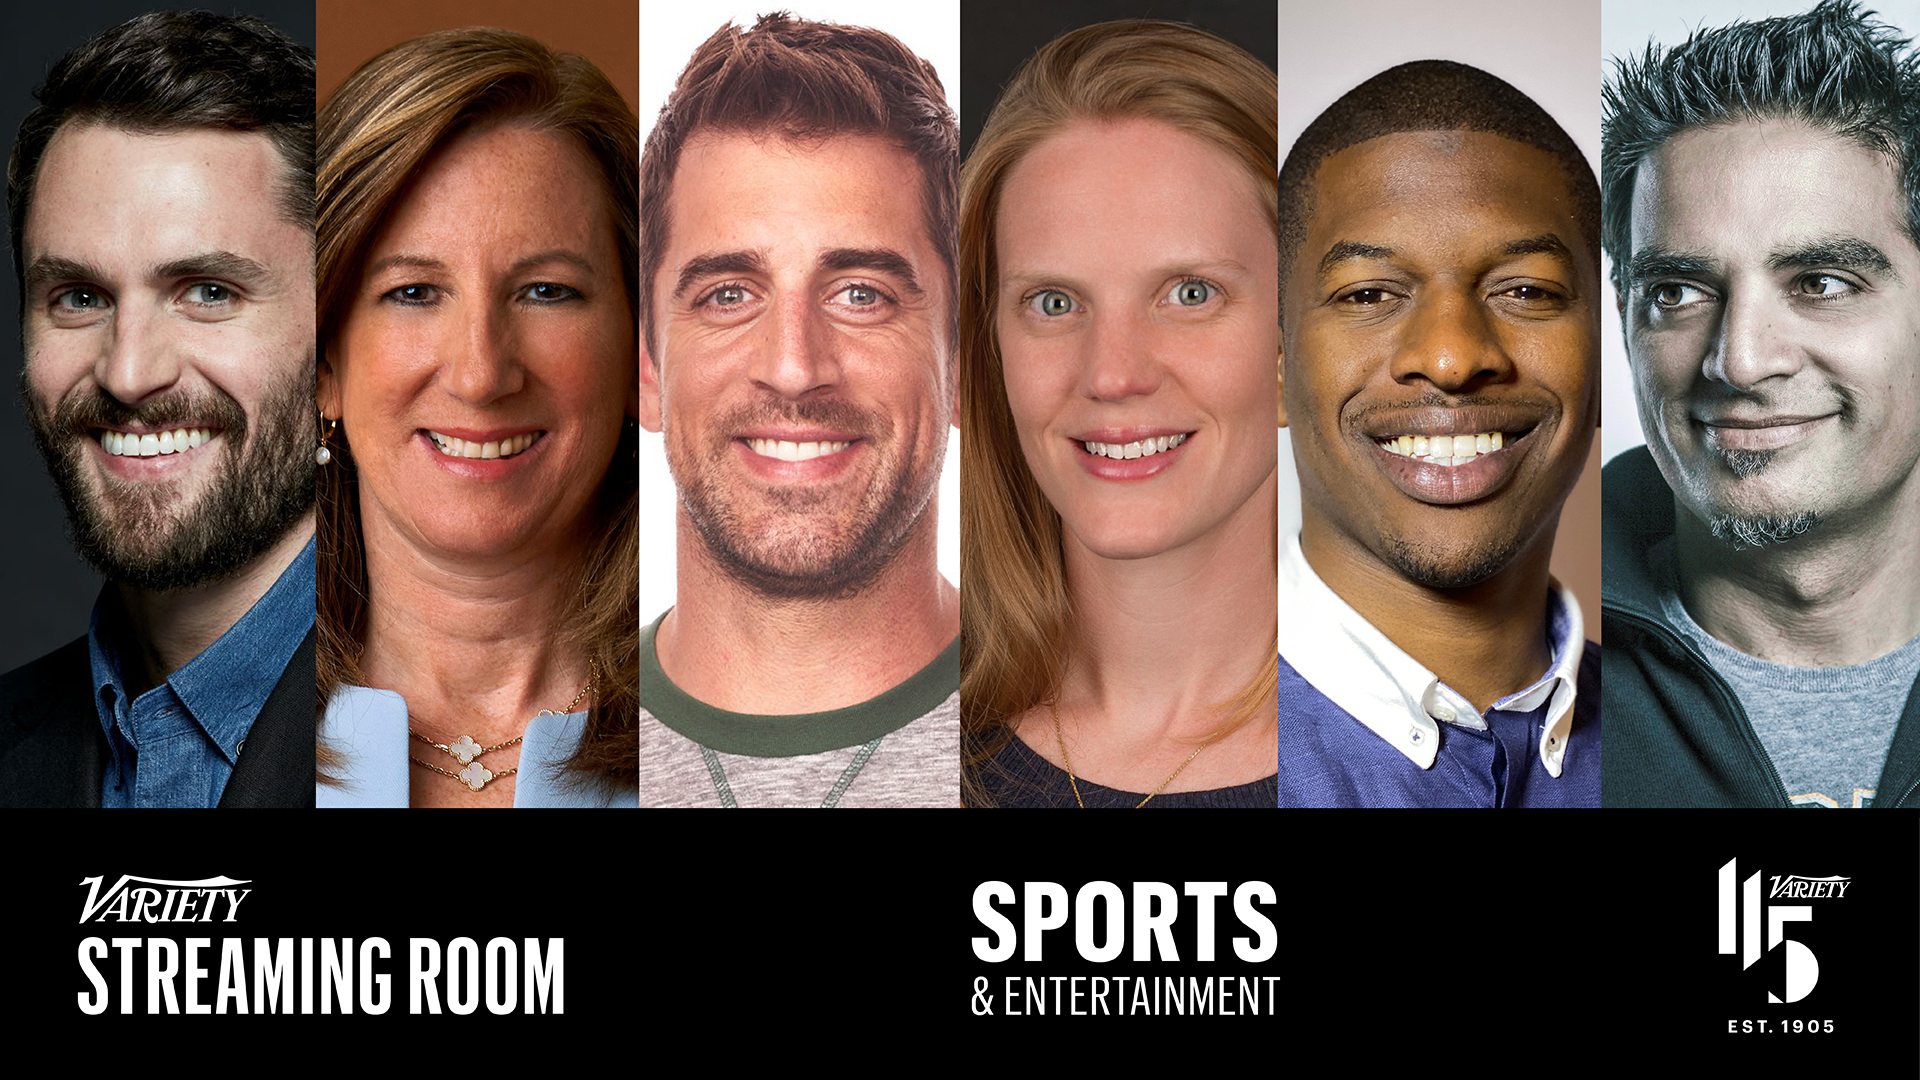 Aaron Rodgers To Keynote Variety Sports Entertainment Conversations Variety